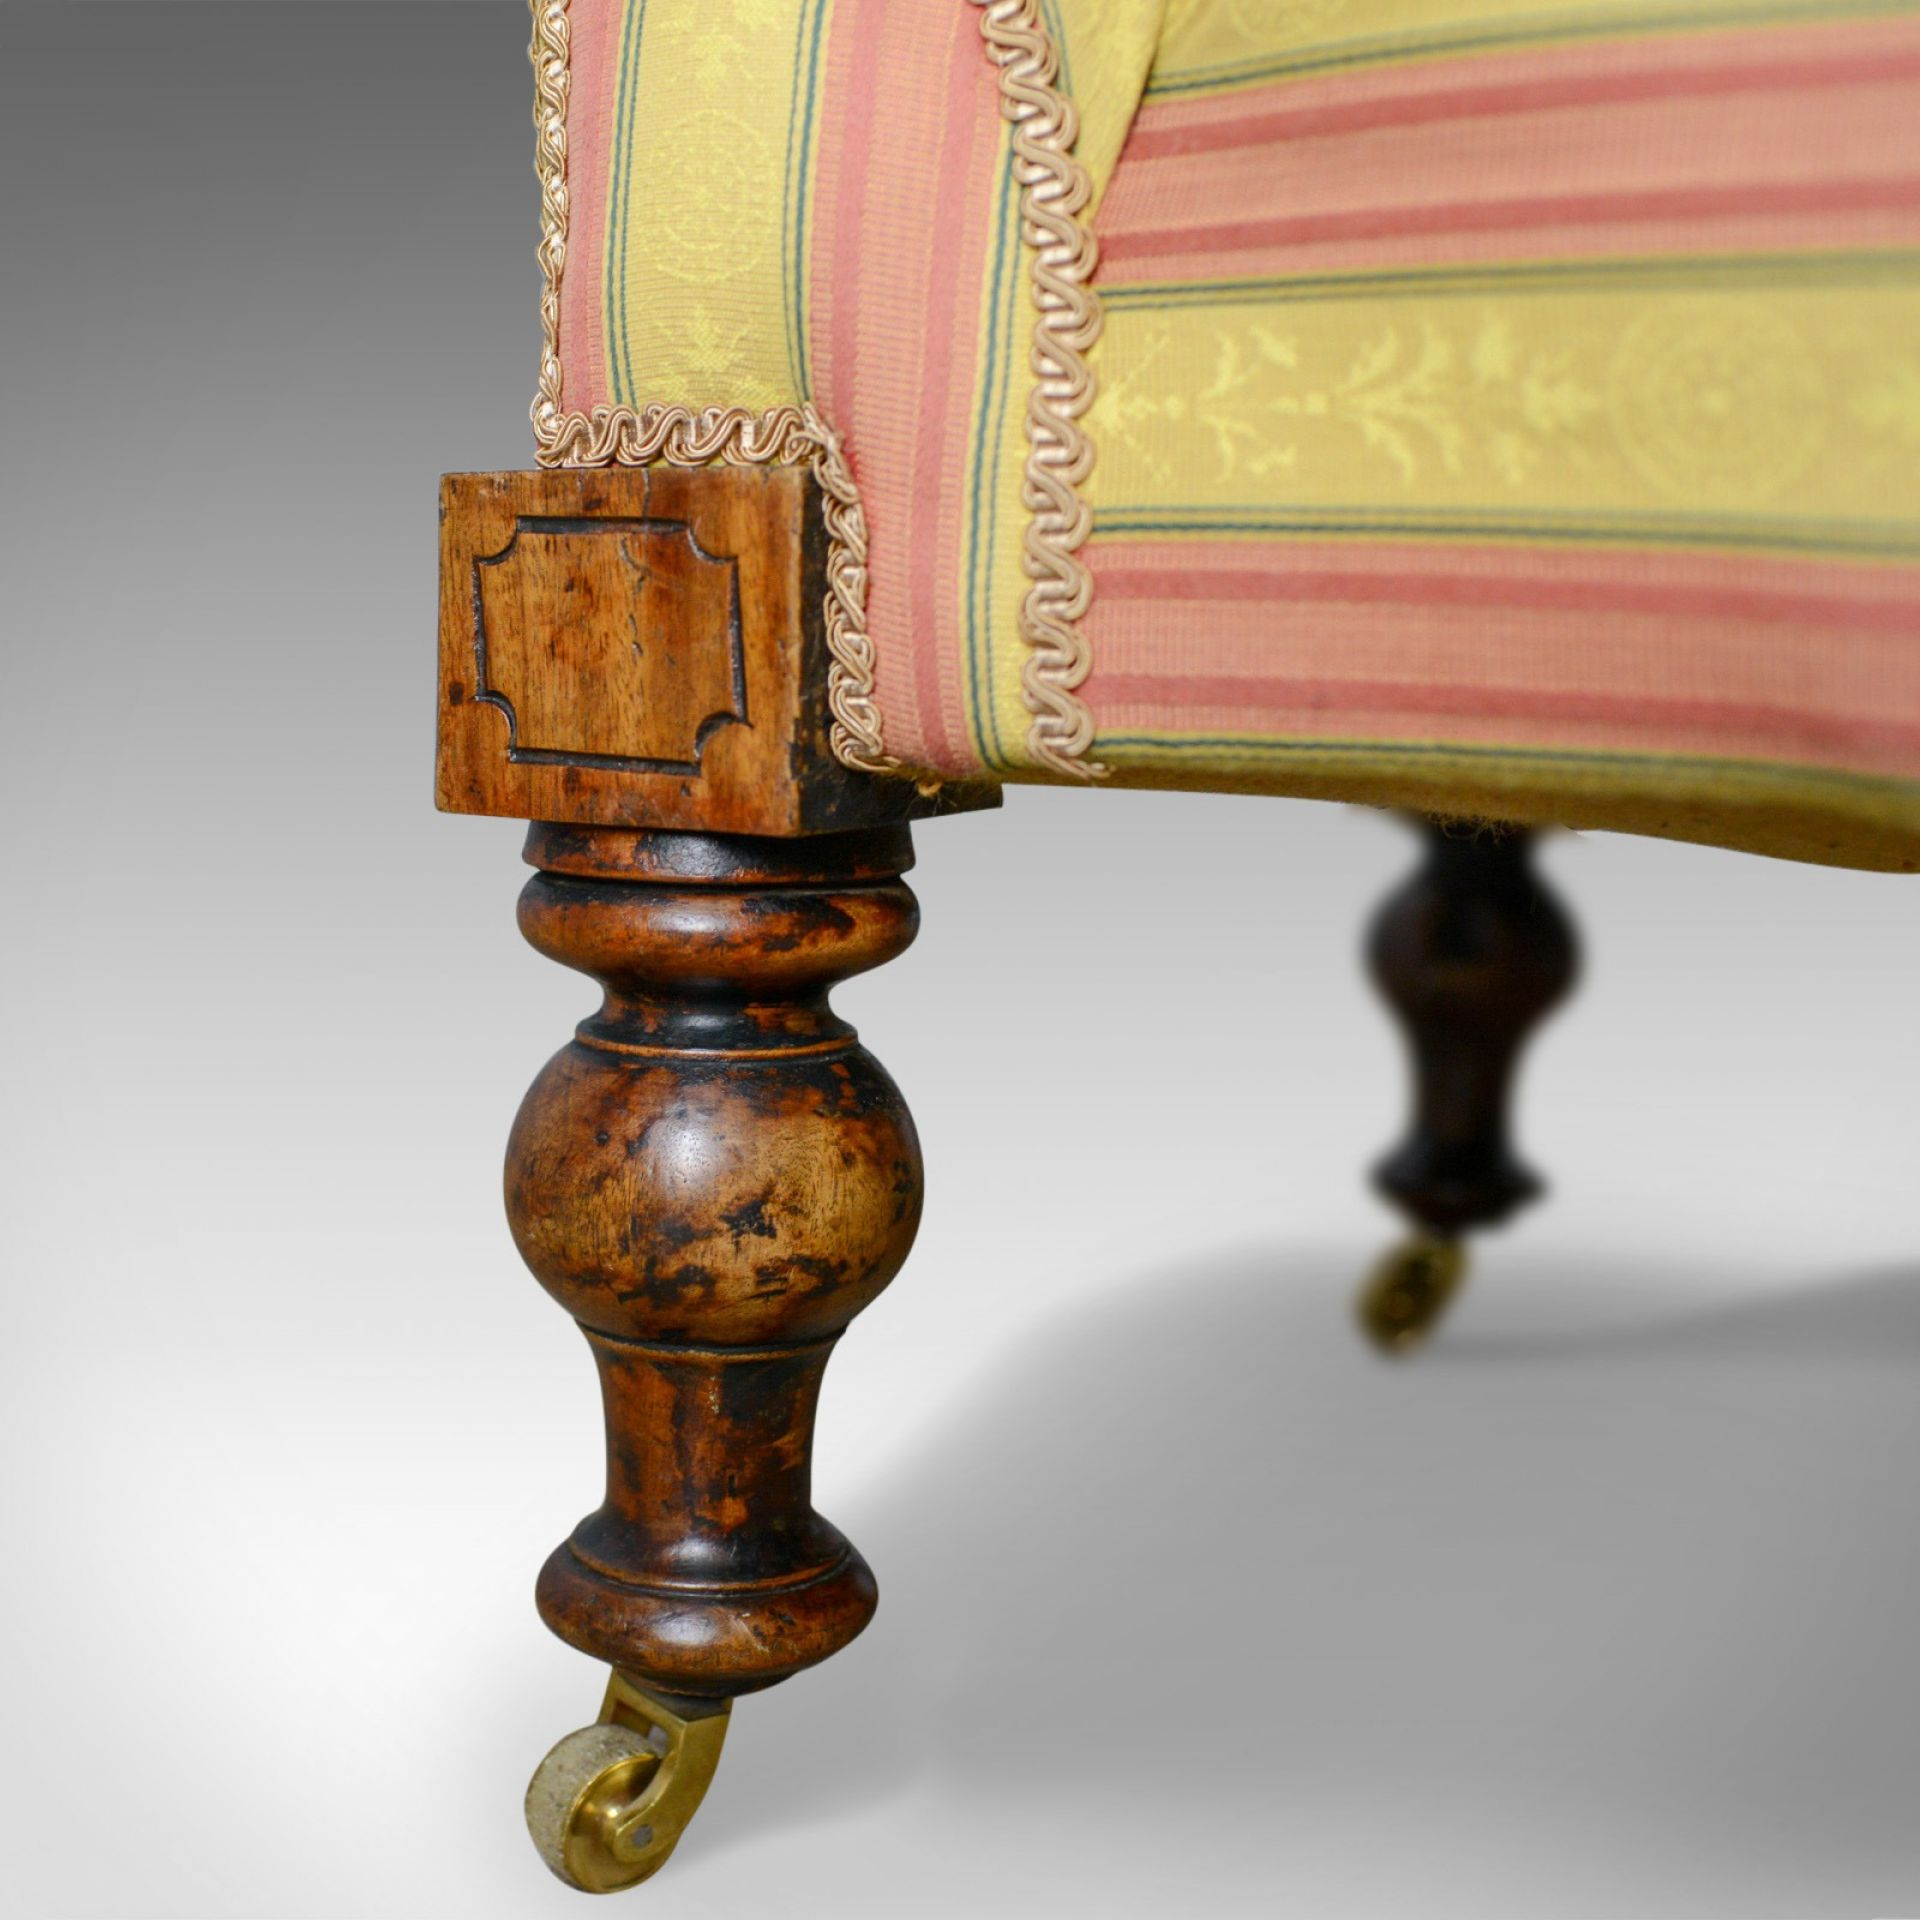 Antique Chaise Longue, English, Victorian, Scroll-End Day Bed, Mahogany c.1870